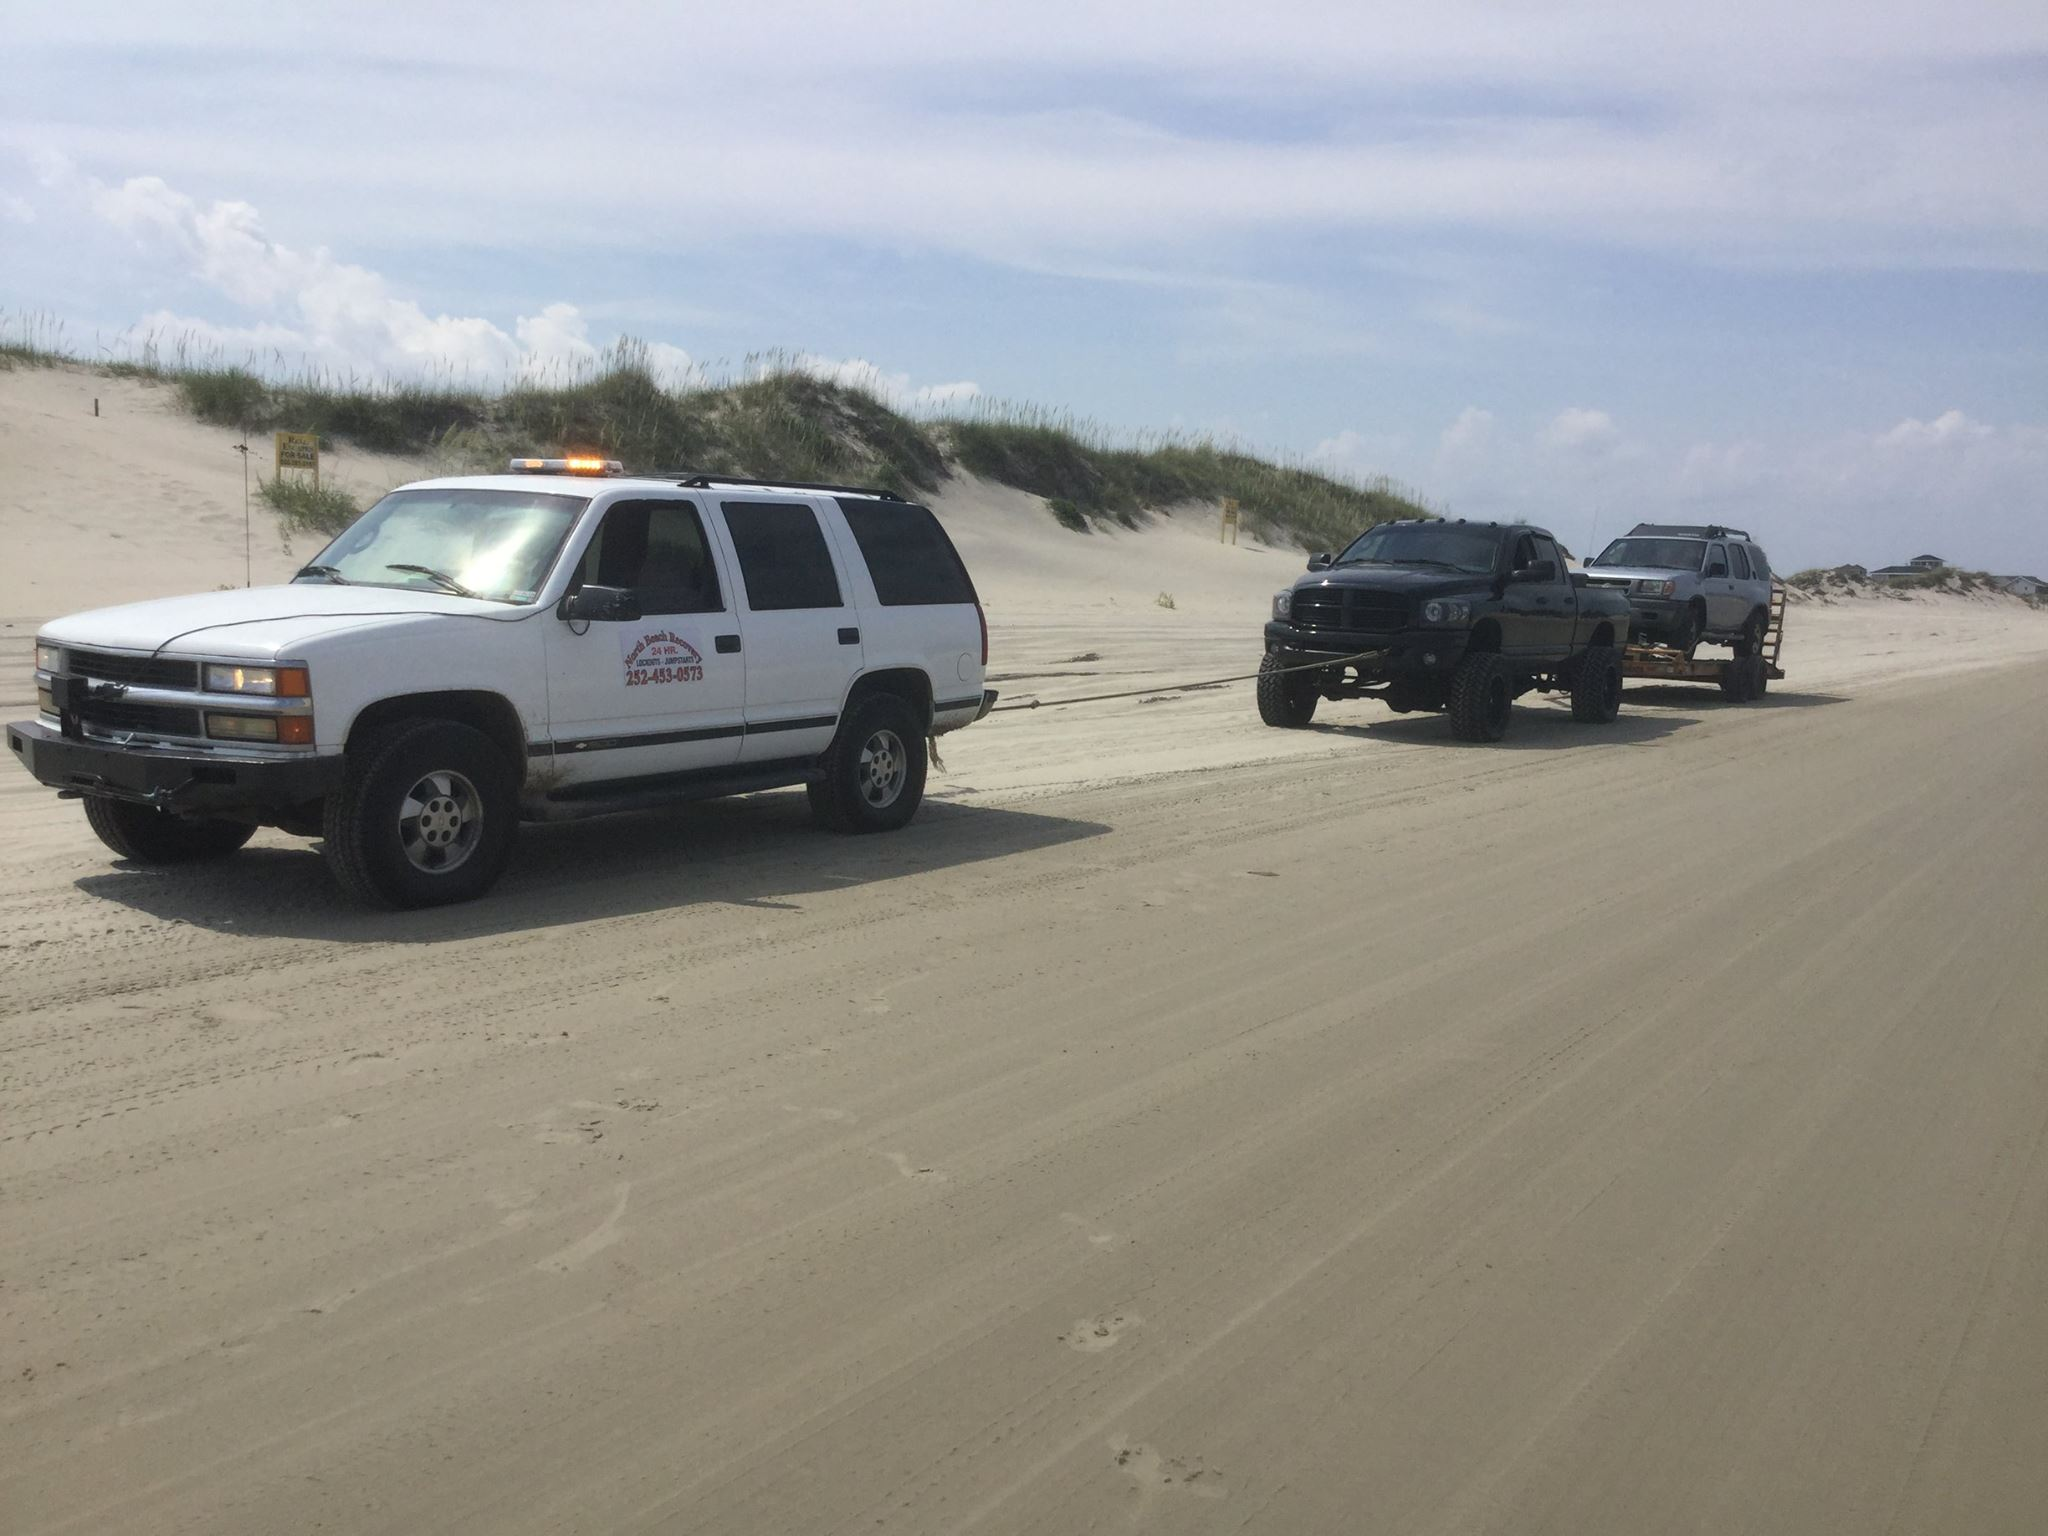 Beach Rescue service towing company stuck in sand Carova Corolla North Beach OBX